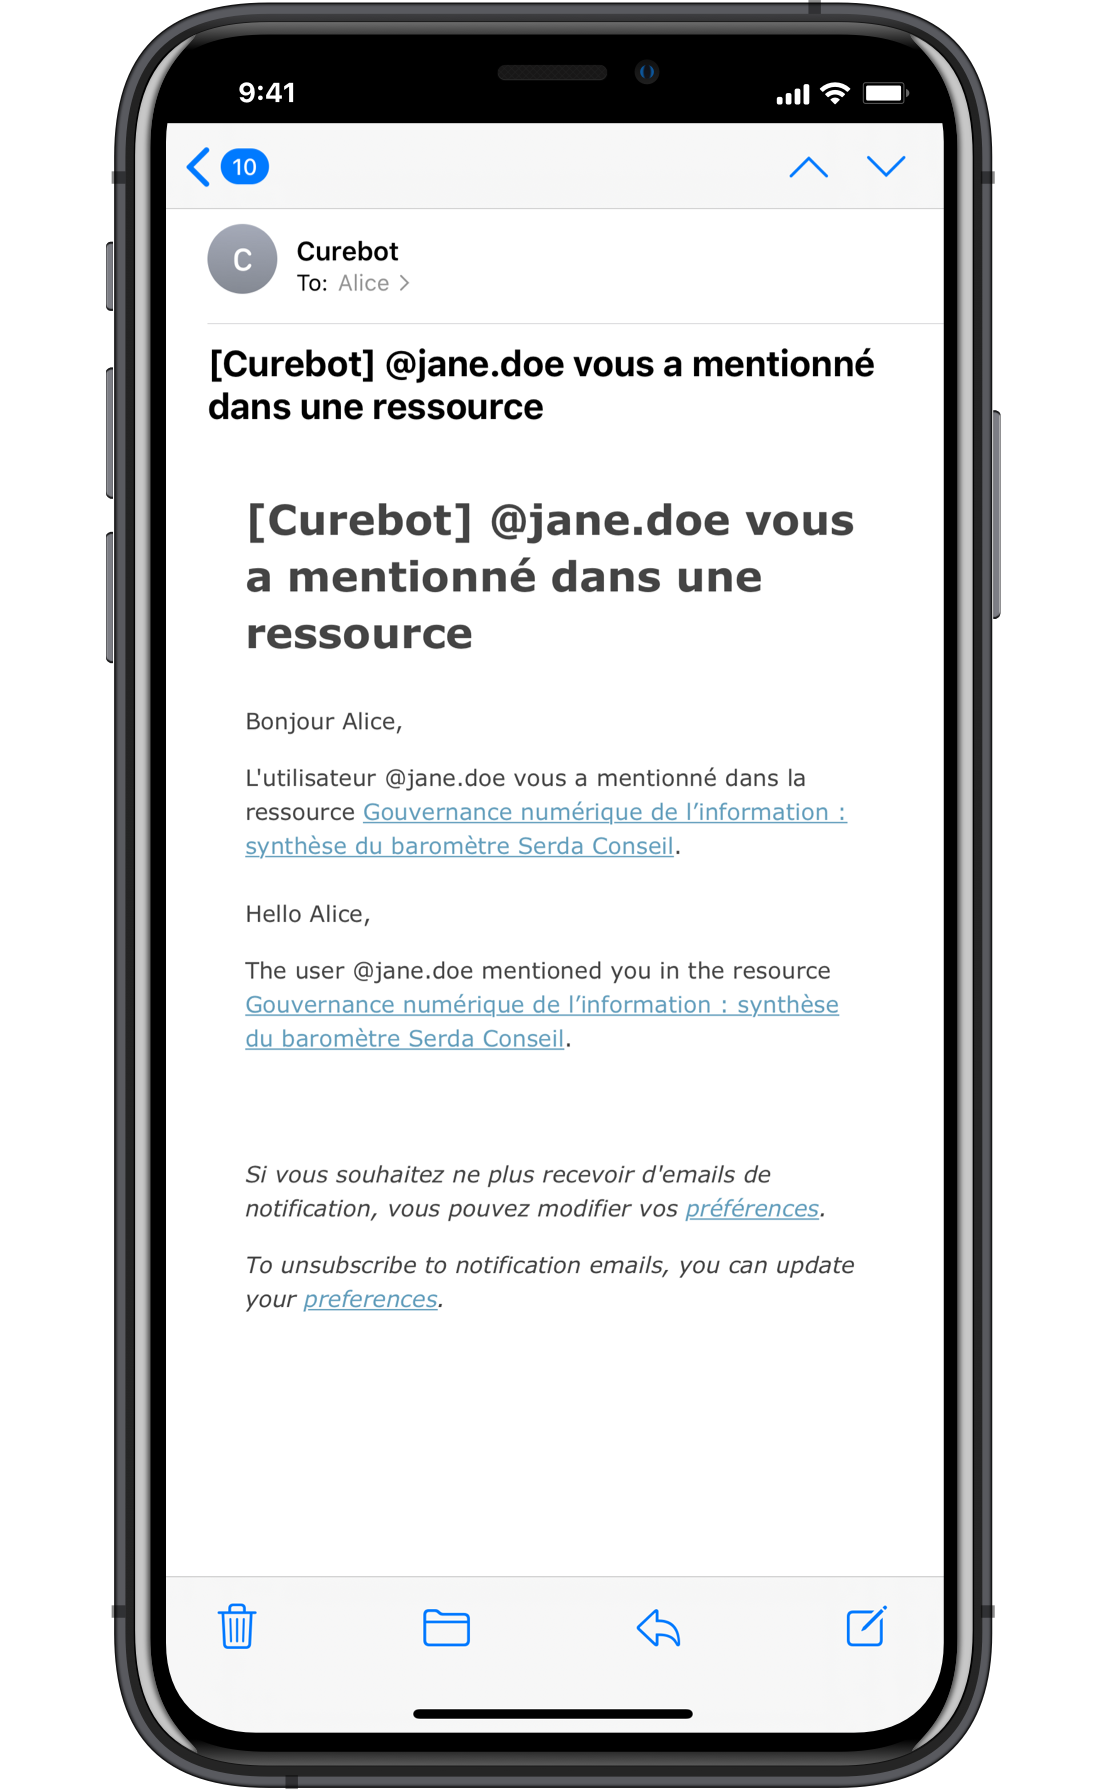 notifications-mention-email-curebot